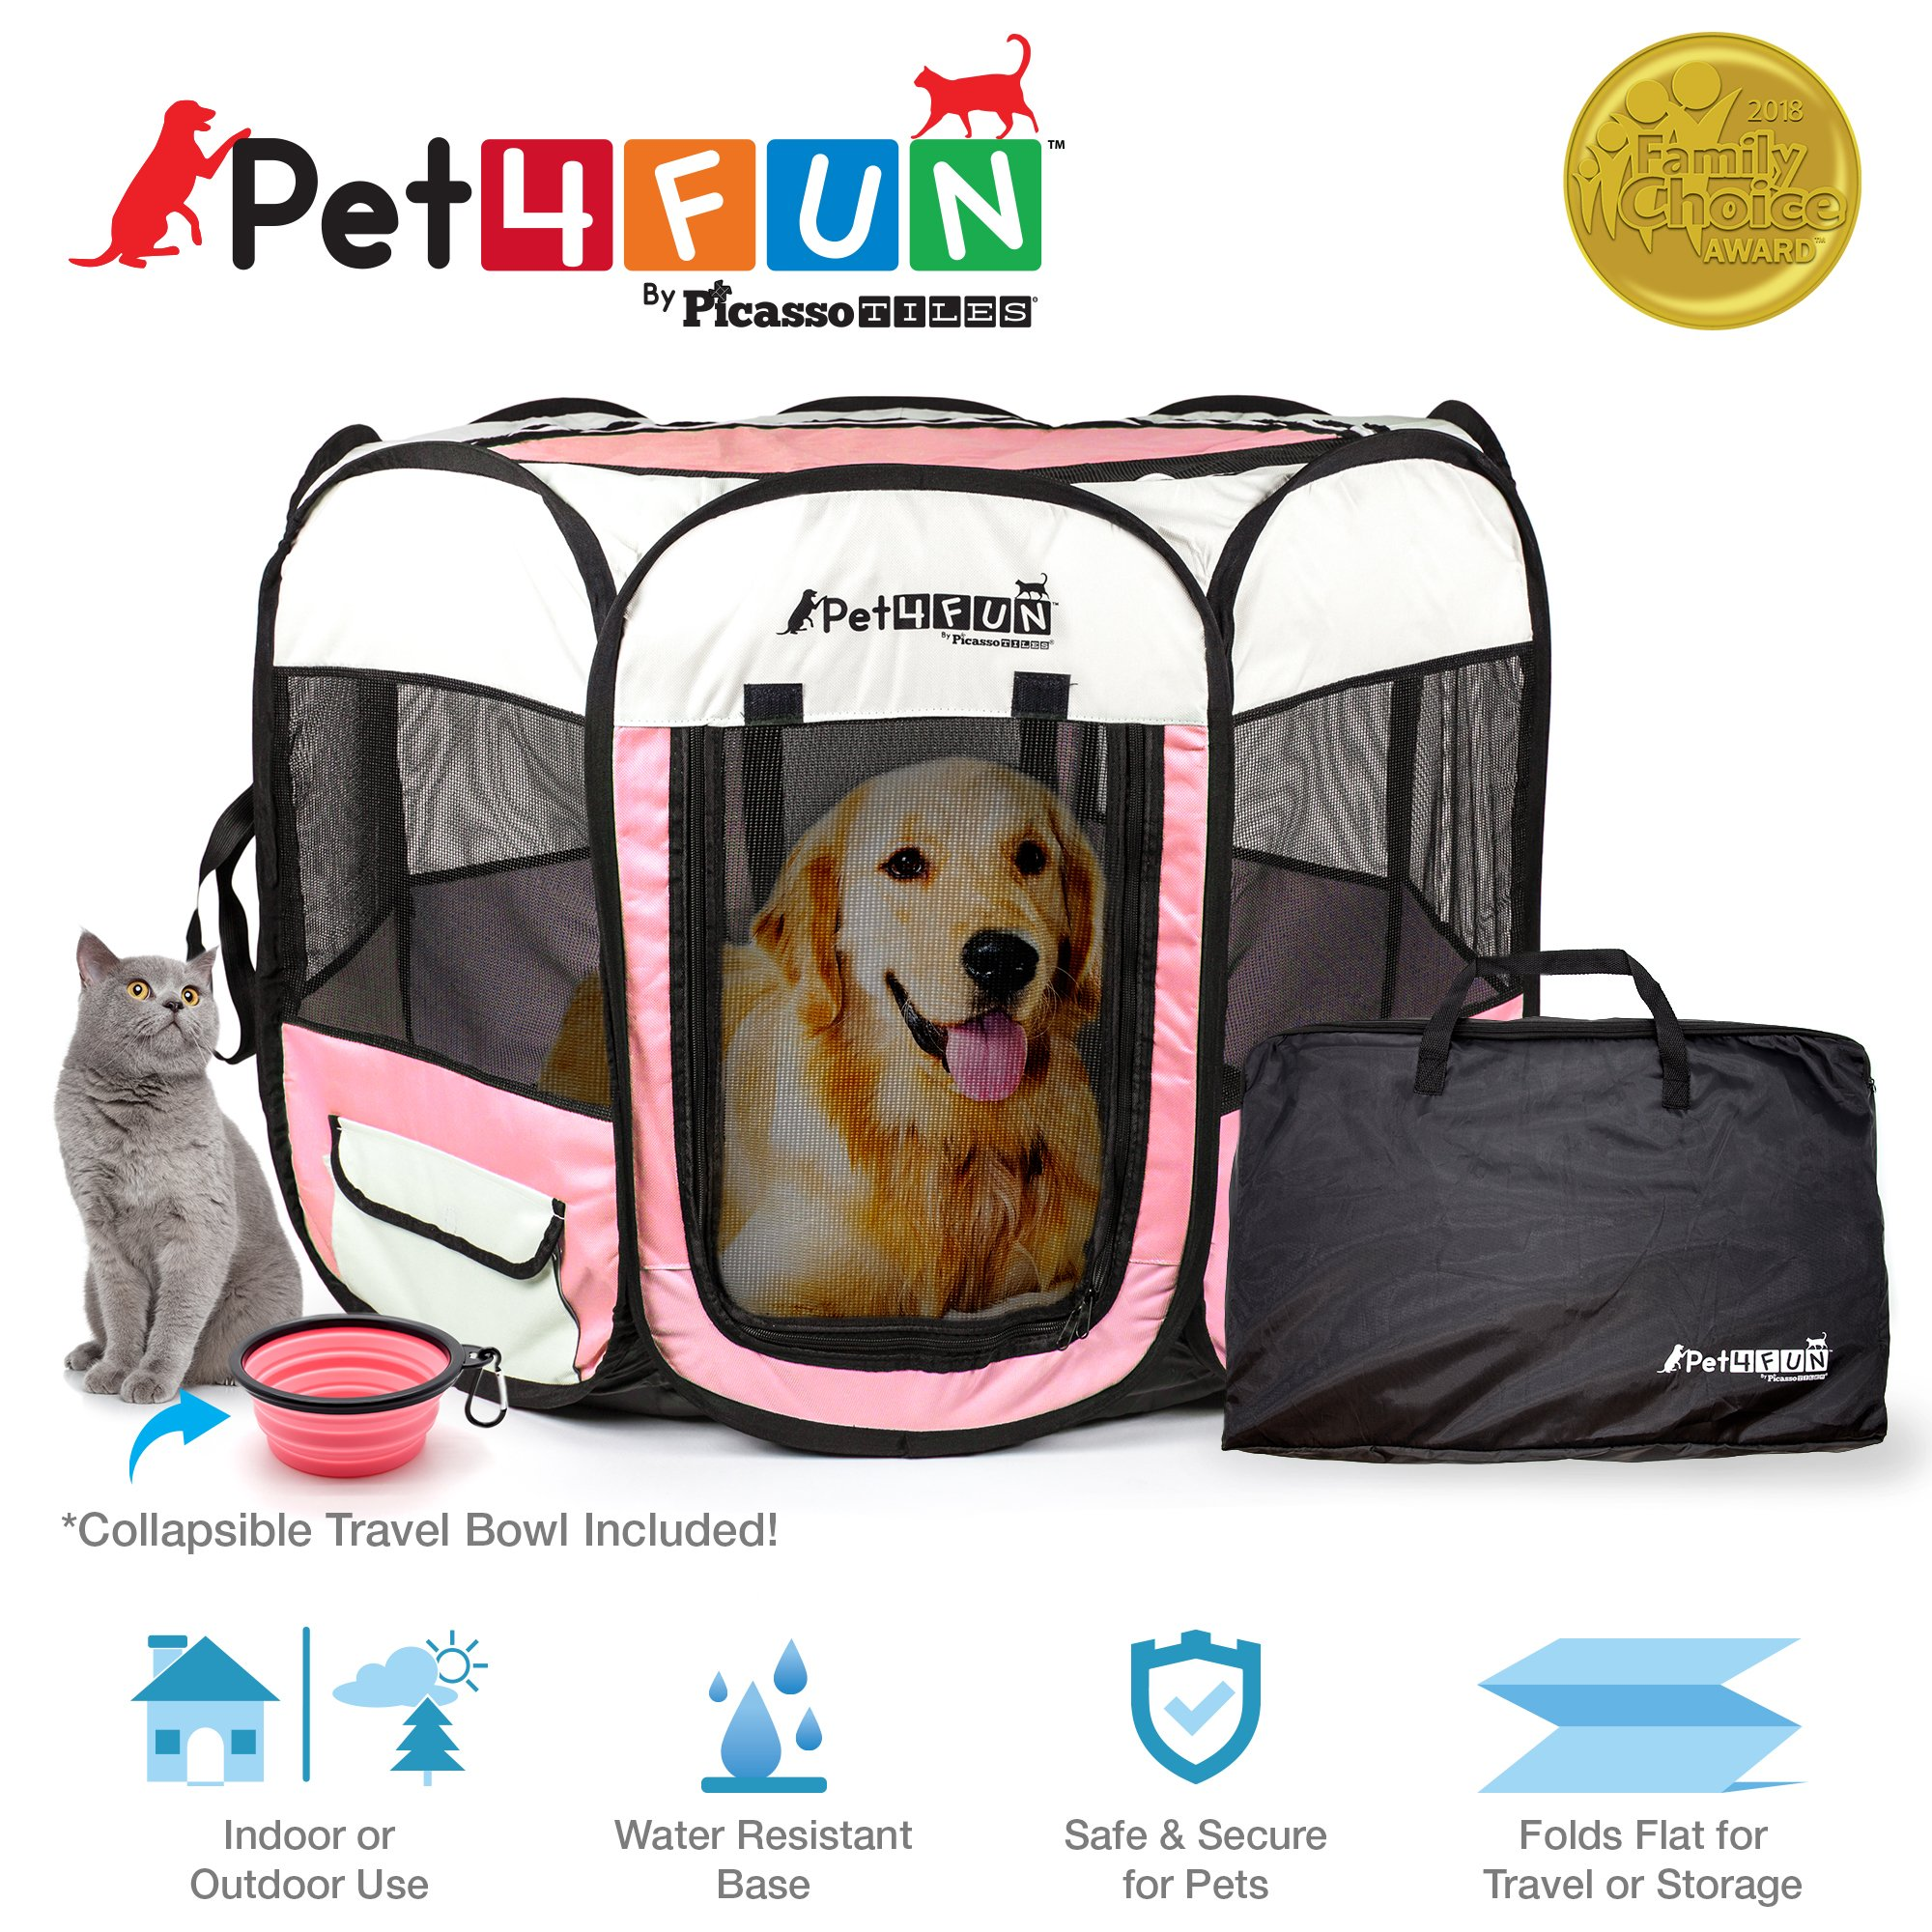 PicassoTiles PET4FUN PN935/PN945 Portable Pet Puppy Dog Cat Playpen Crates Kennel w/Water Resistant 600D Oxford, 210D Nylon, Carrying Bag, Collapsible Bowl, Removable Mesh Cover 2 Sizes by PicassoTiles